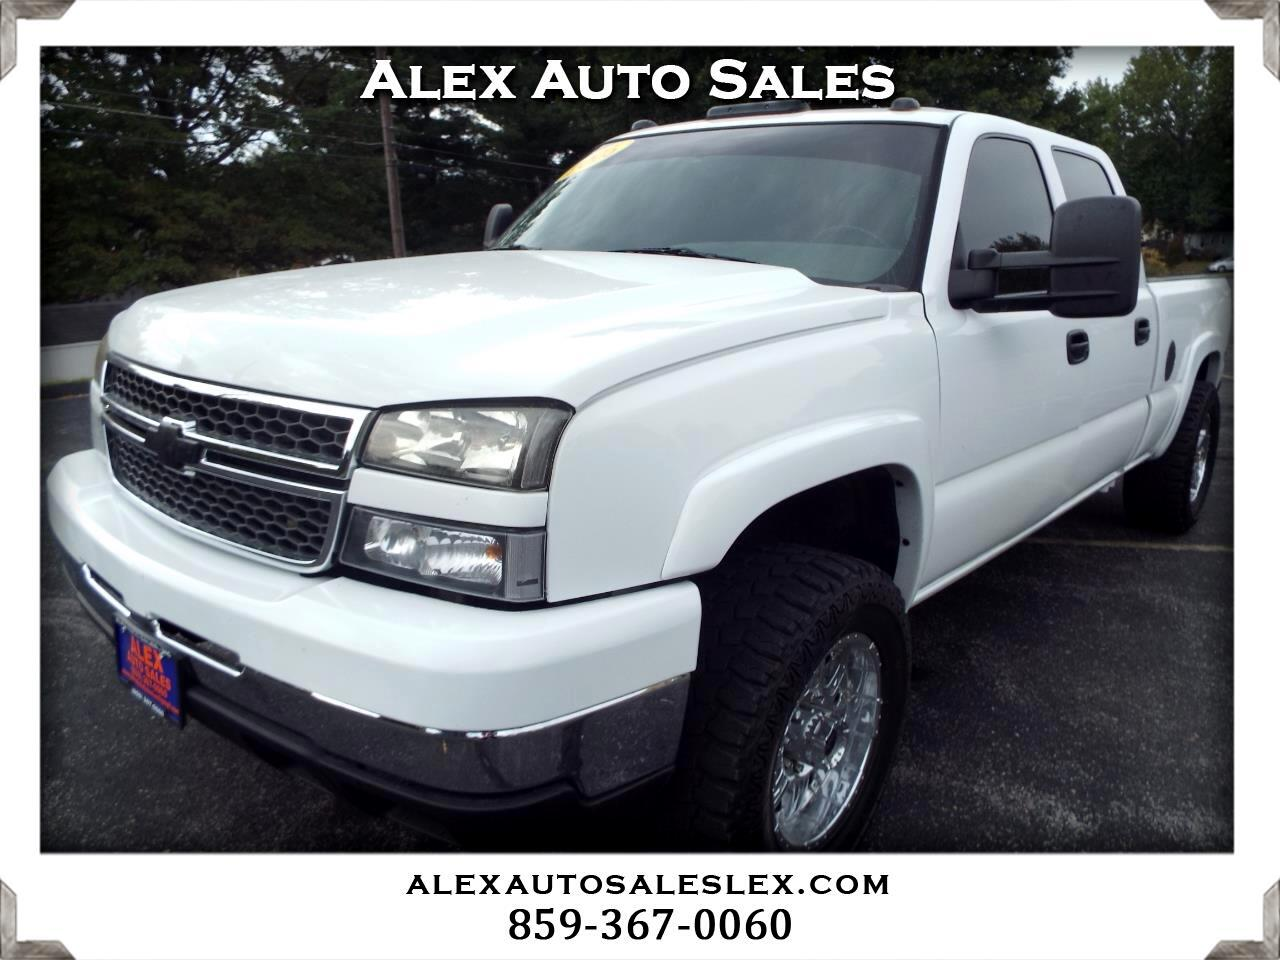 Chevrolet Silverado 2500HD LT Crew Cab Long Bed 4WD 2005